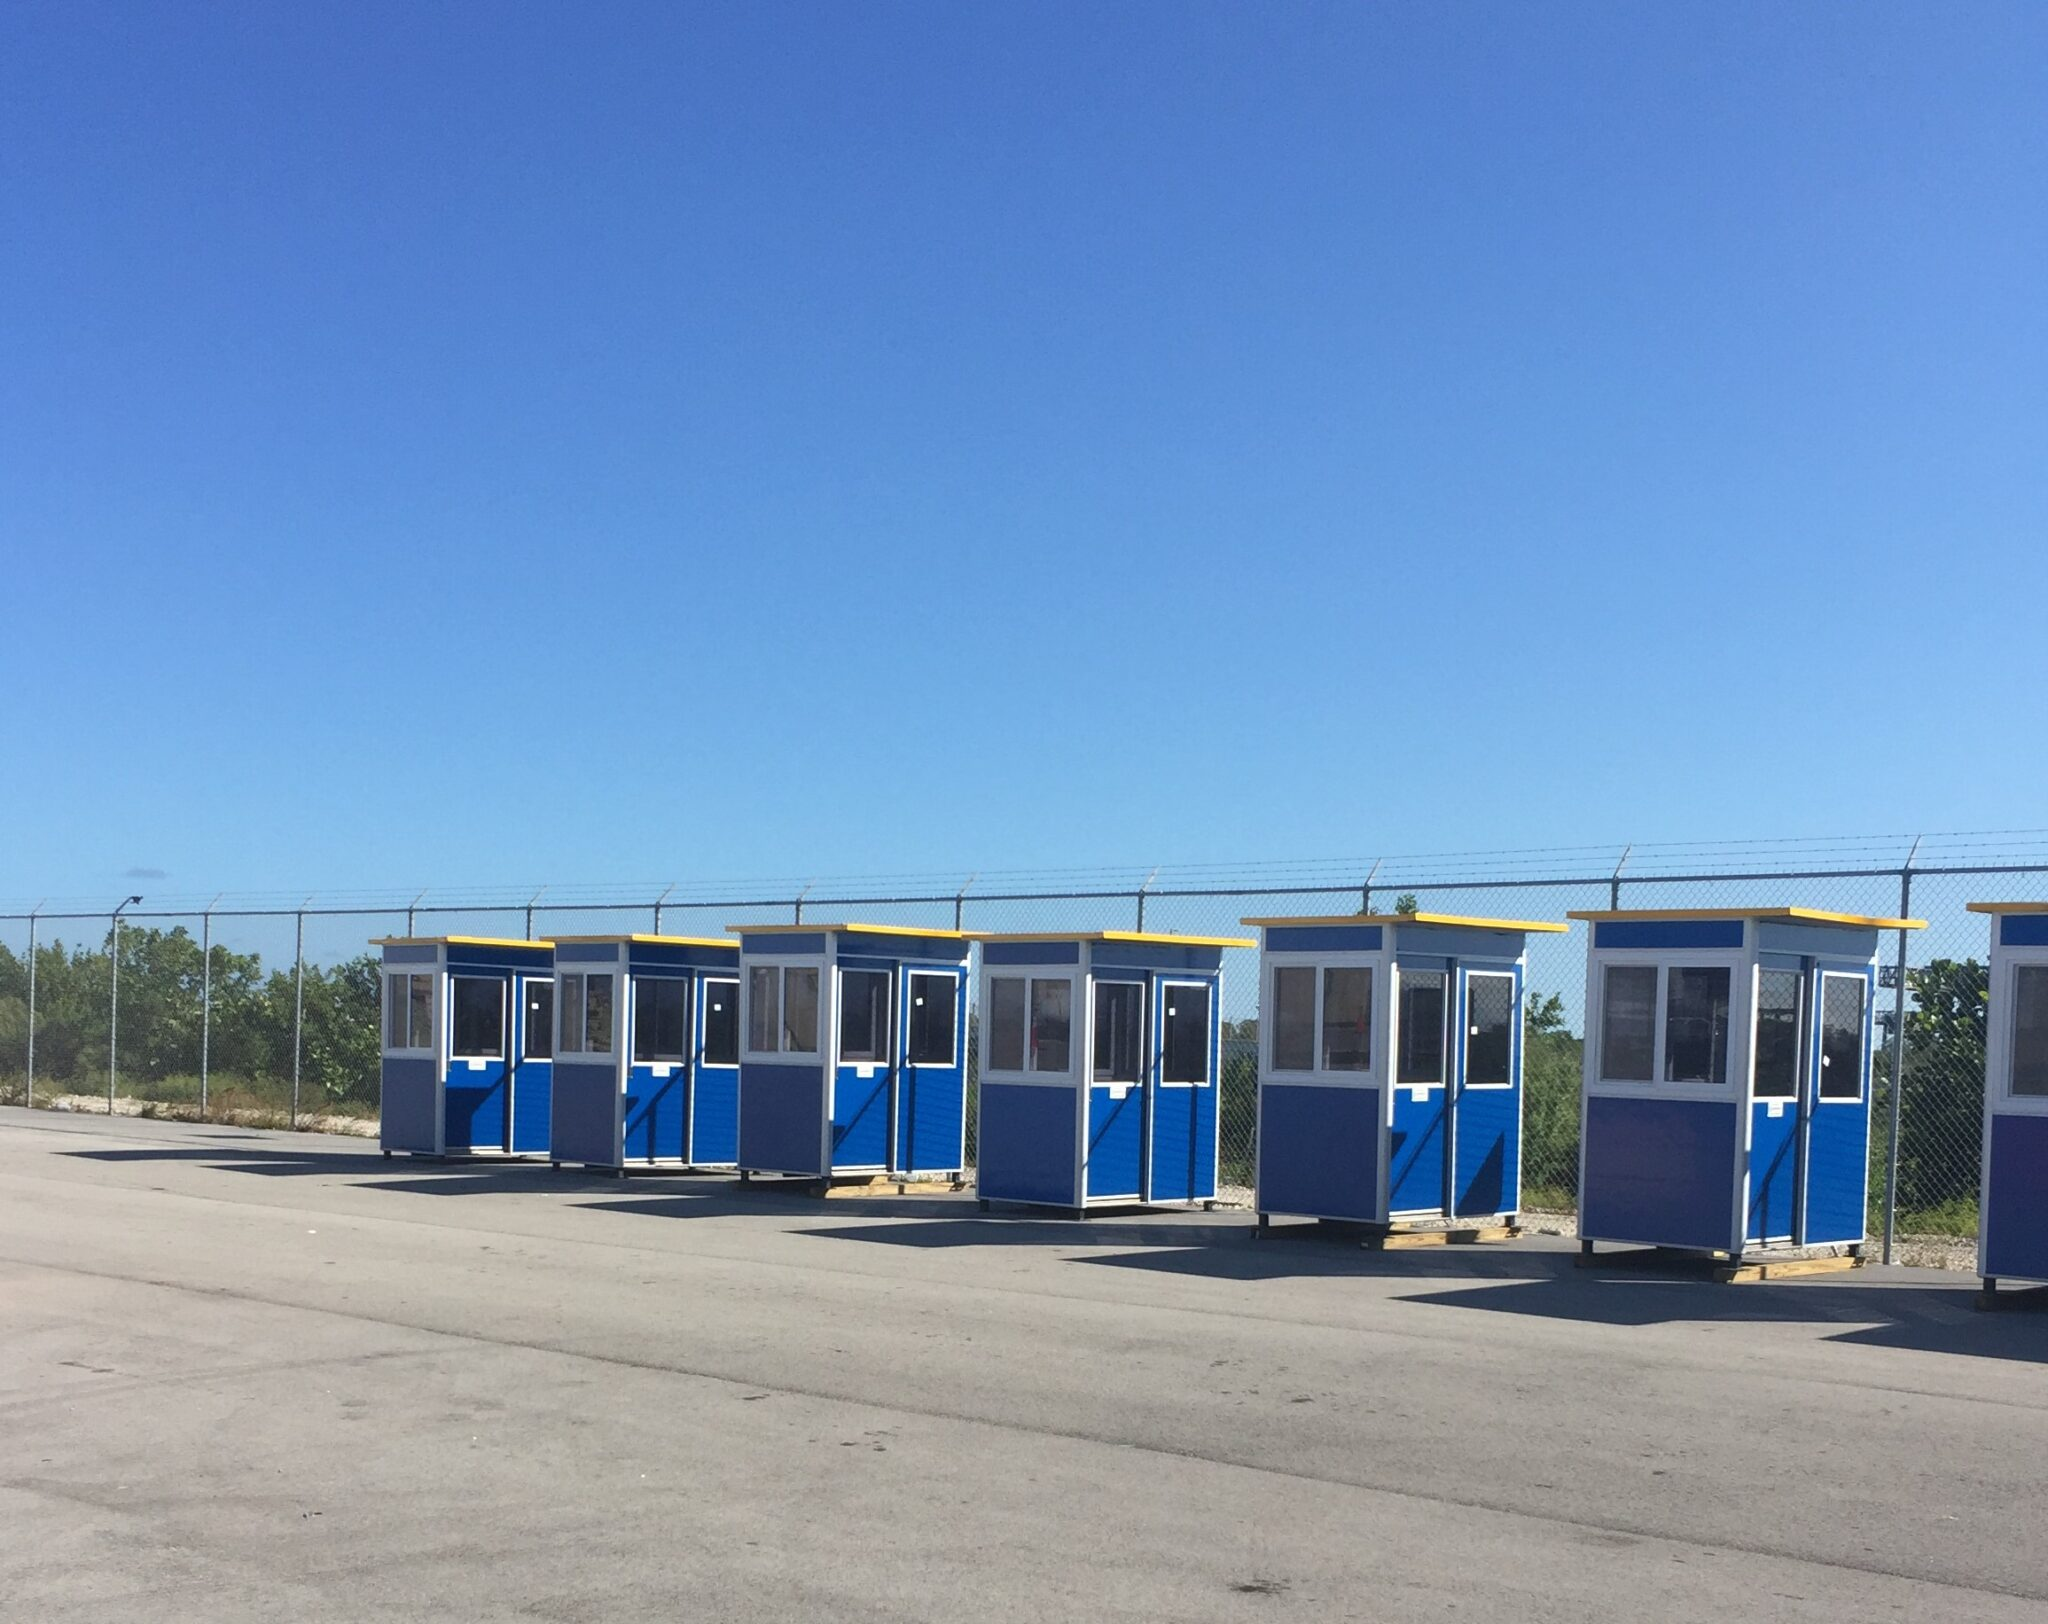 4x6 Security Guard Booths in Fort Lauderdale,FL with Sliding Door, Tinted Windows, and Extended Overhang